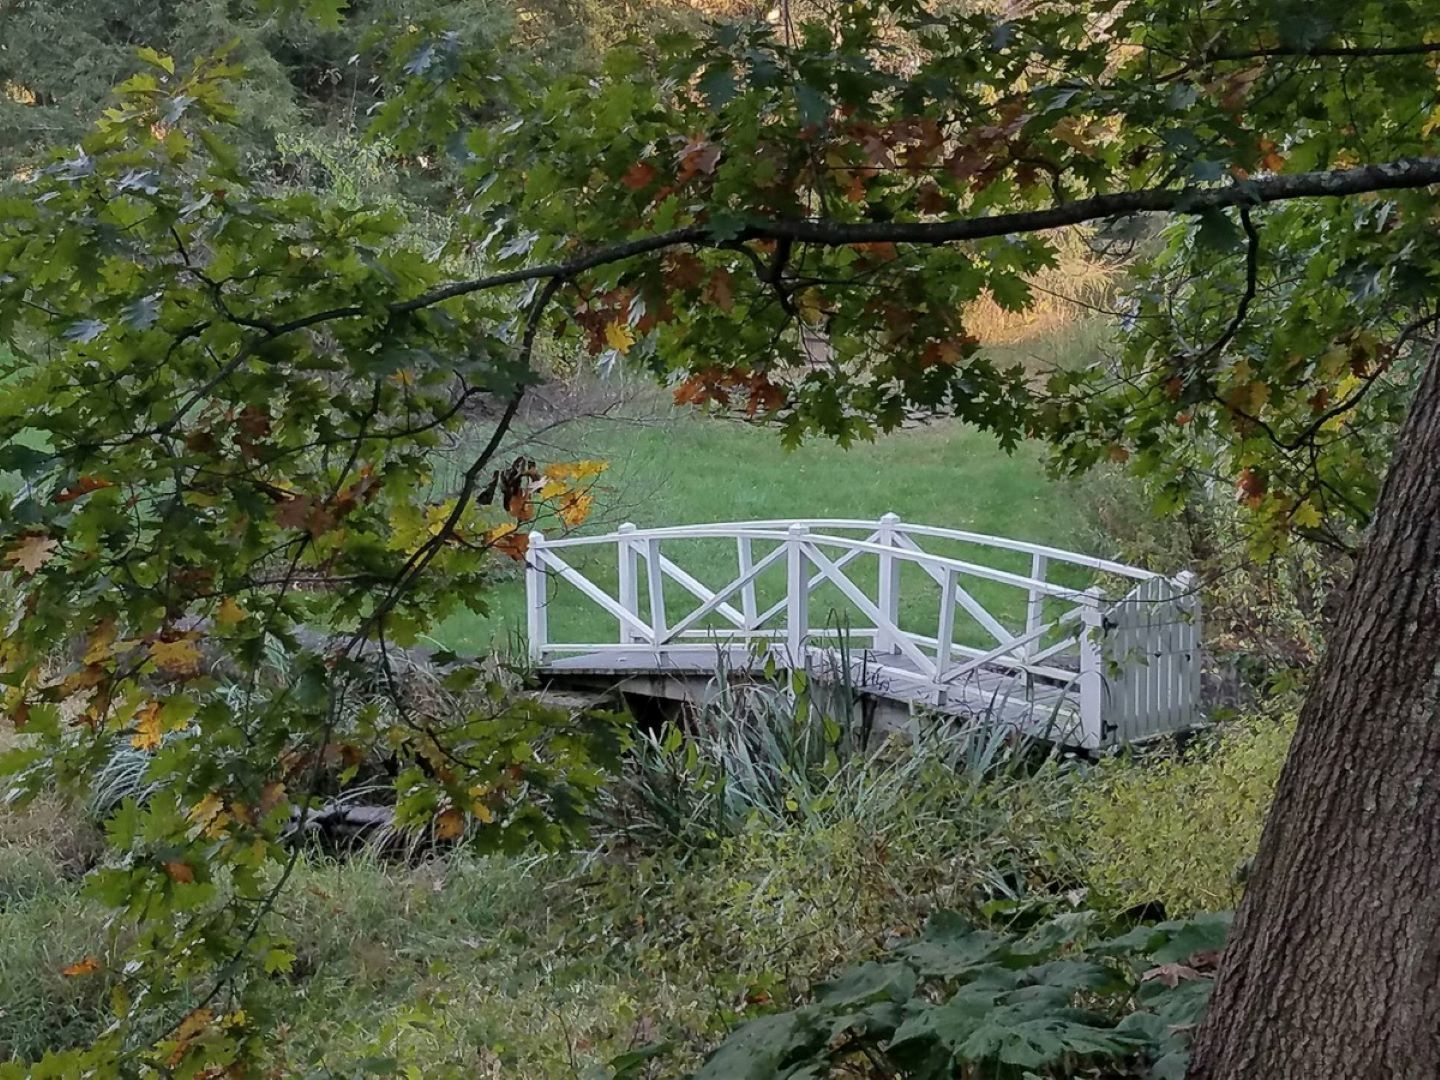 A bridge with grass and trees at Windflower Inn.